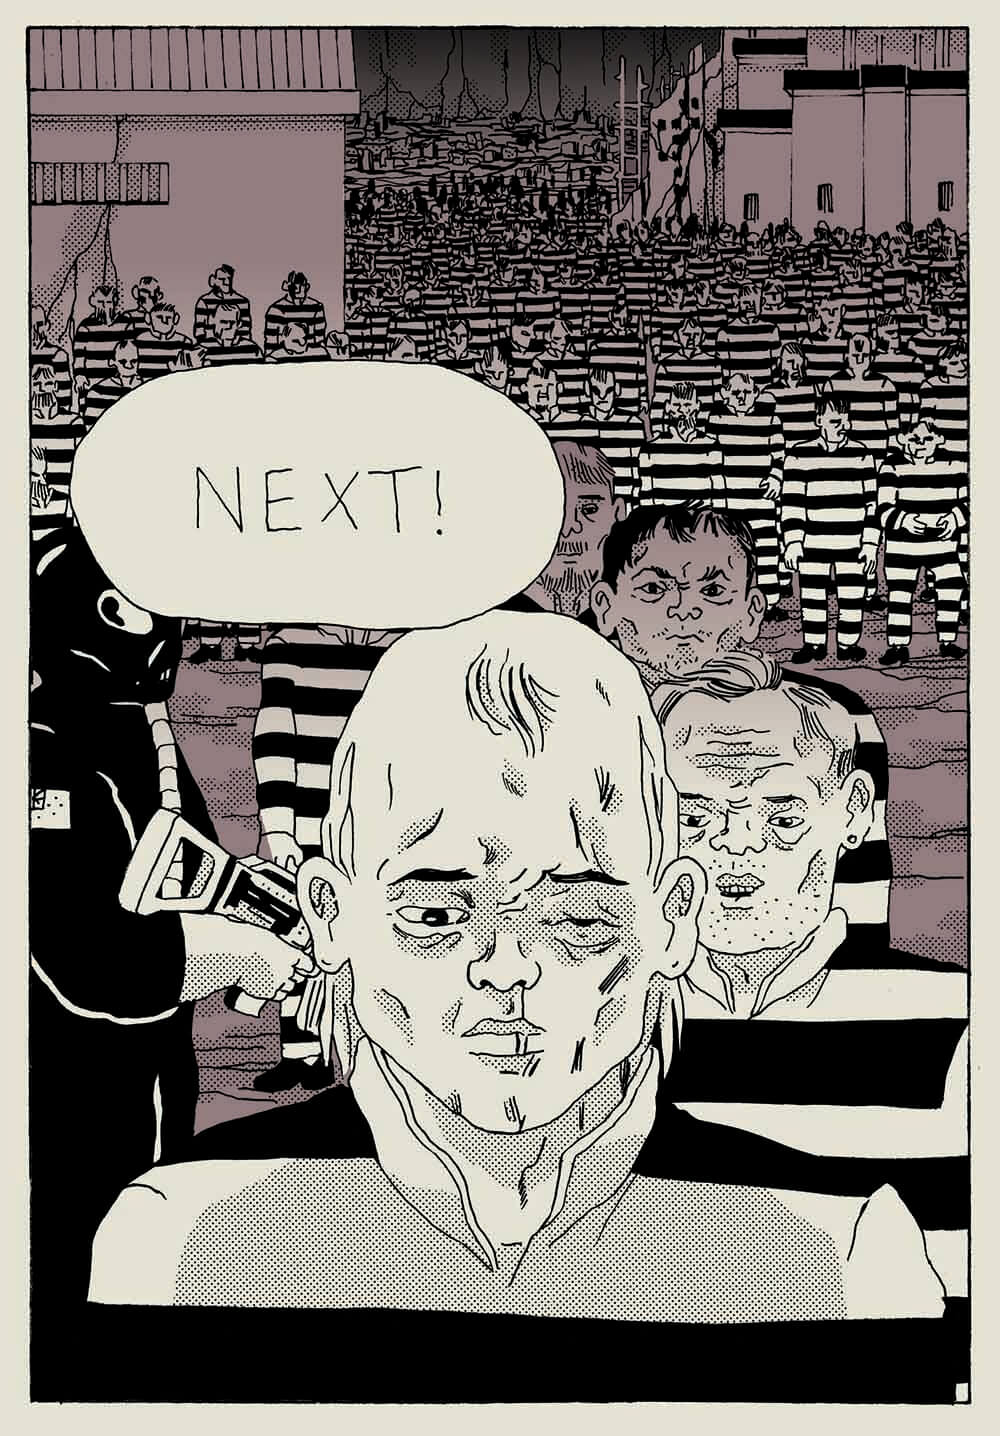 A speech bubble reads NEXT and floats above man with one closed eye. Behind him is a long queue of prisons in striped uniforms.